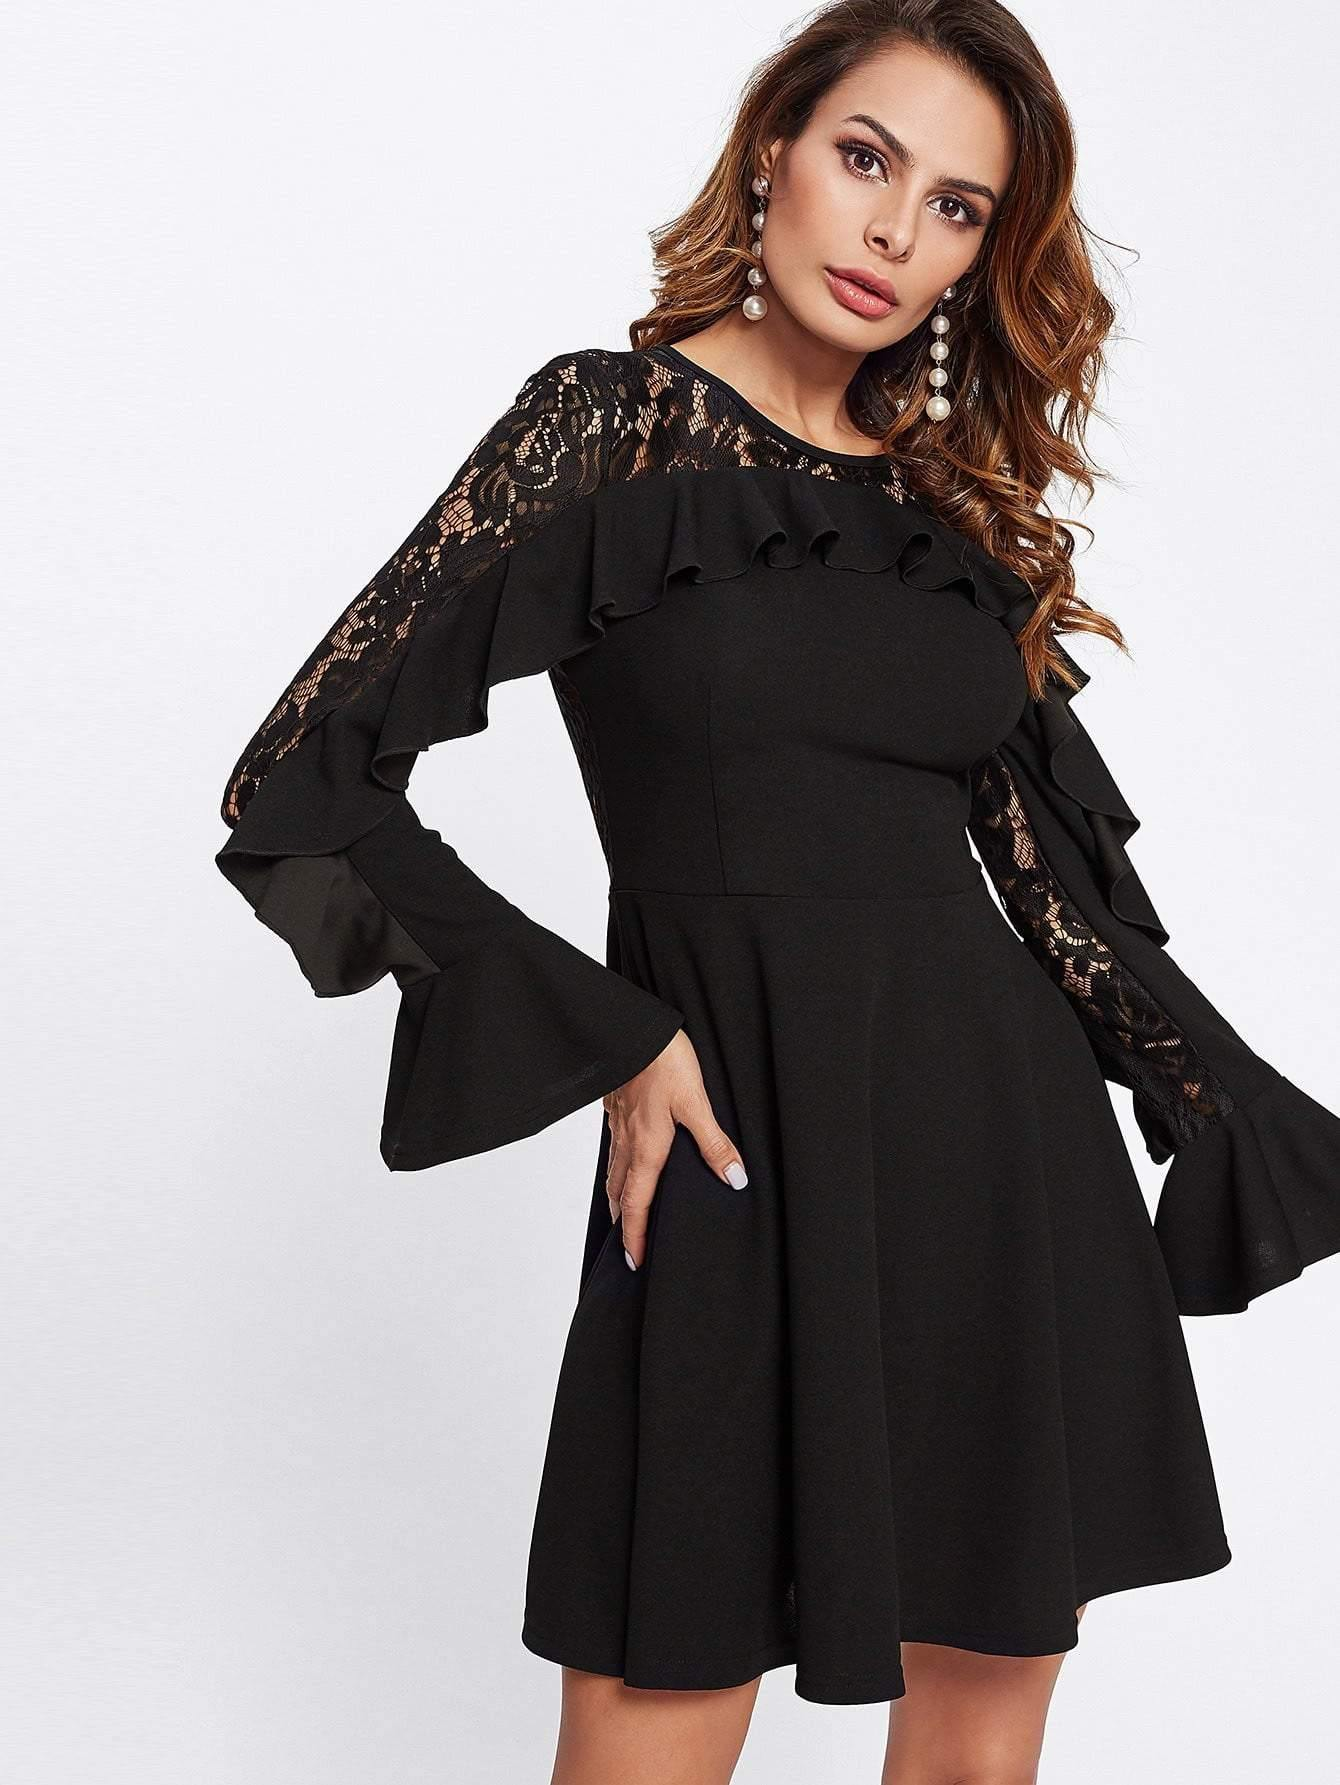 Contrast Lace Flounce Embellished Fitted & Flared Dress - Dresses - Zooomberg - Zoomberg